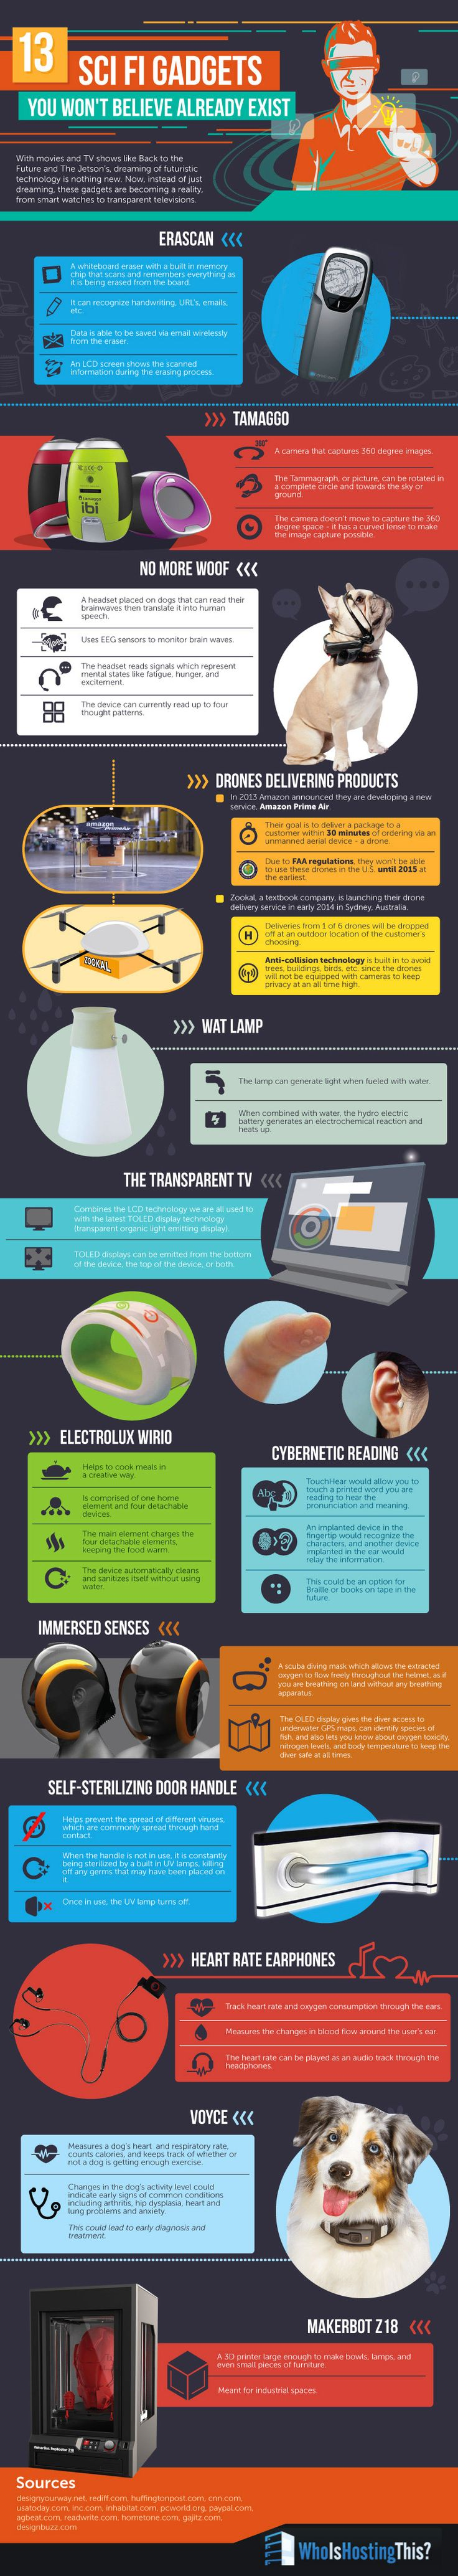 13 Sci-Fi Gadgets You Won't Believe Already Exist #infographic